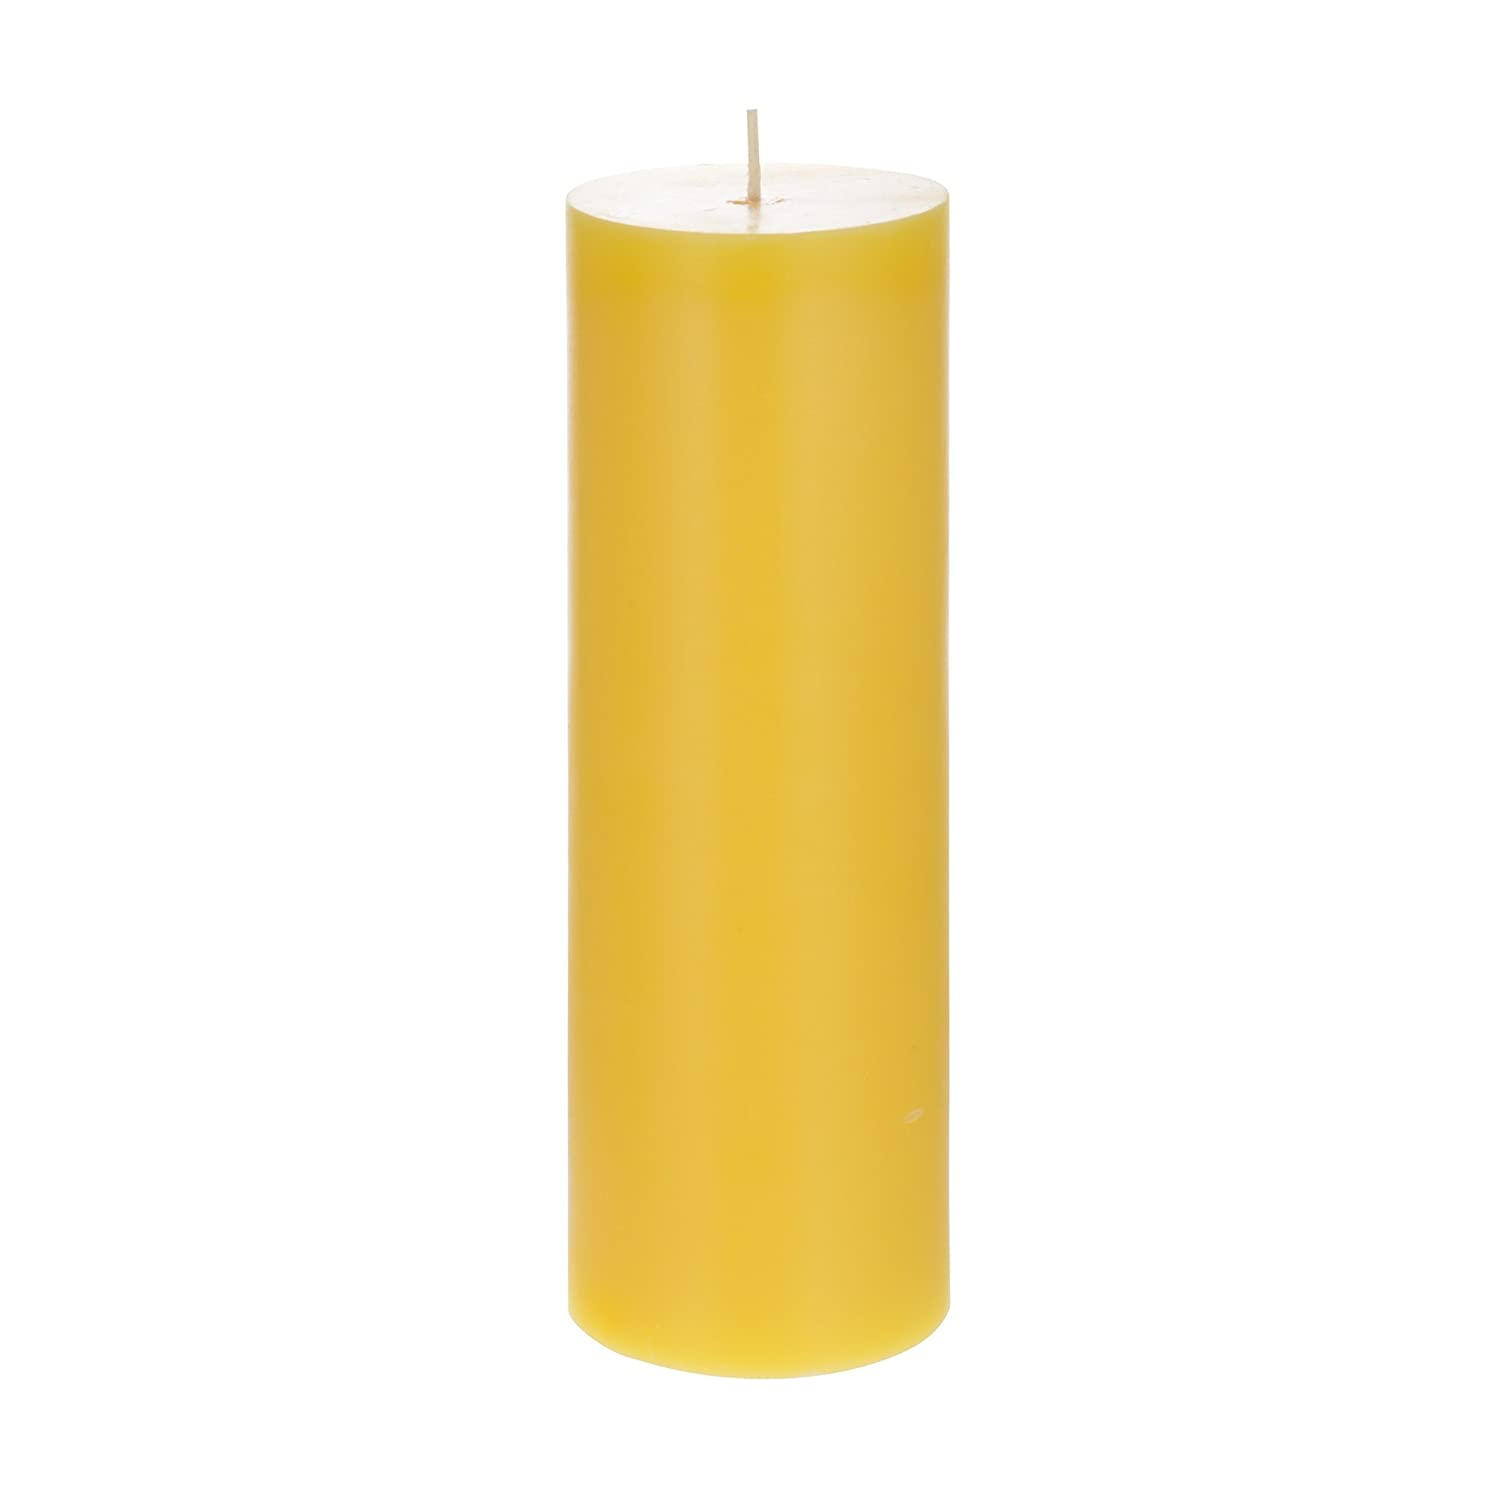 Bug Repellent Candles For Indoor And Outdoor Use Mega Candles 6 pcs Citronella Round Pillar Candle Hand Poured Paraffin Wax Candles 3 x 9 Everyday Candles For Mosquitoes And Insects